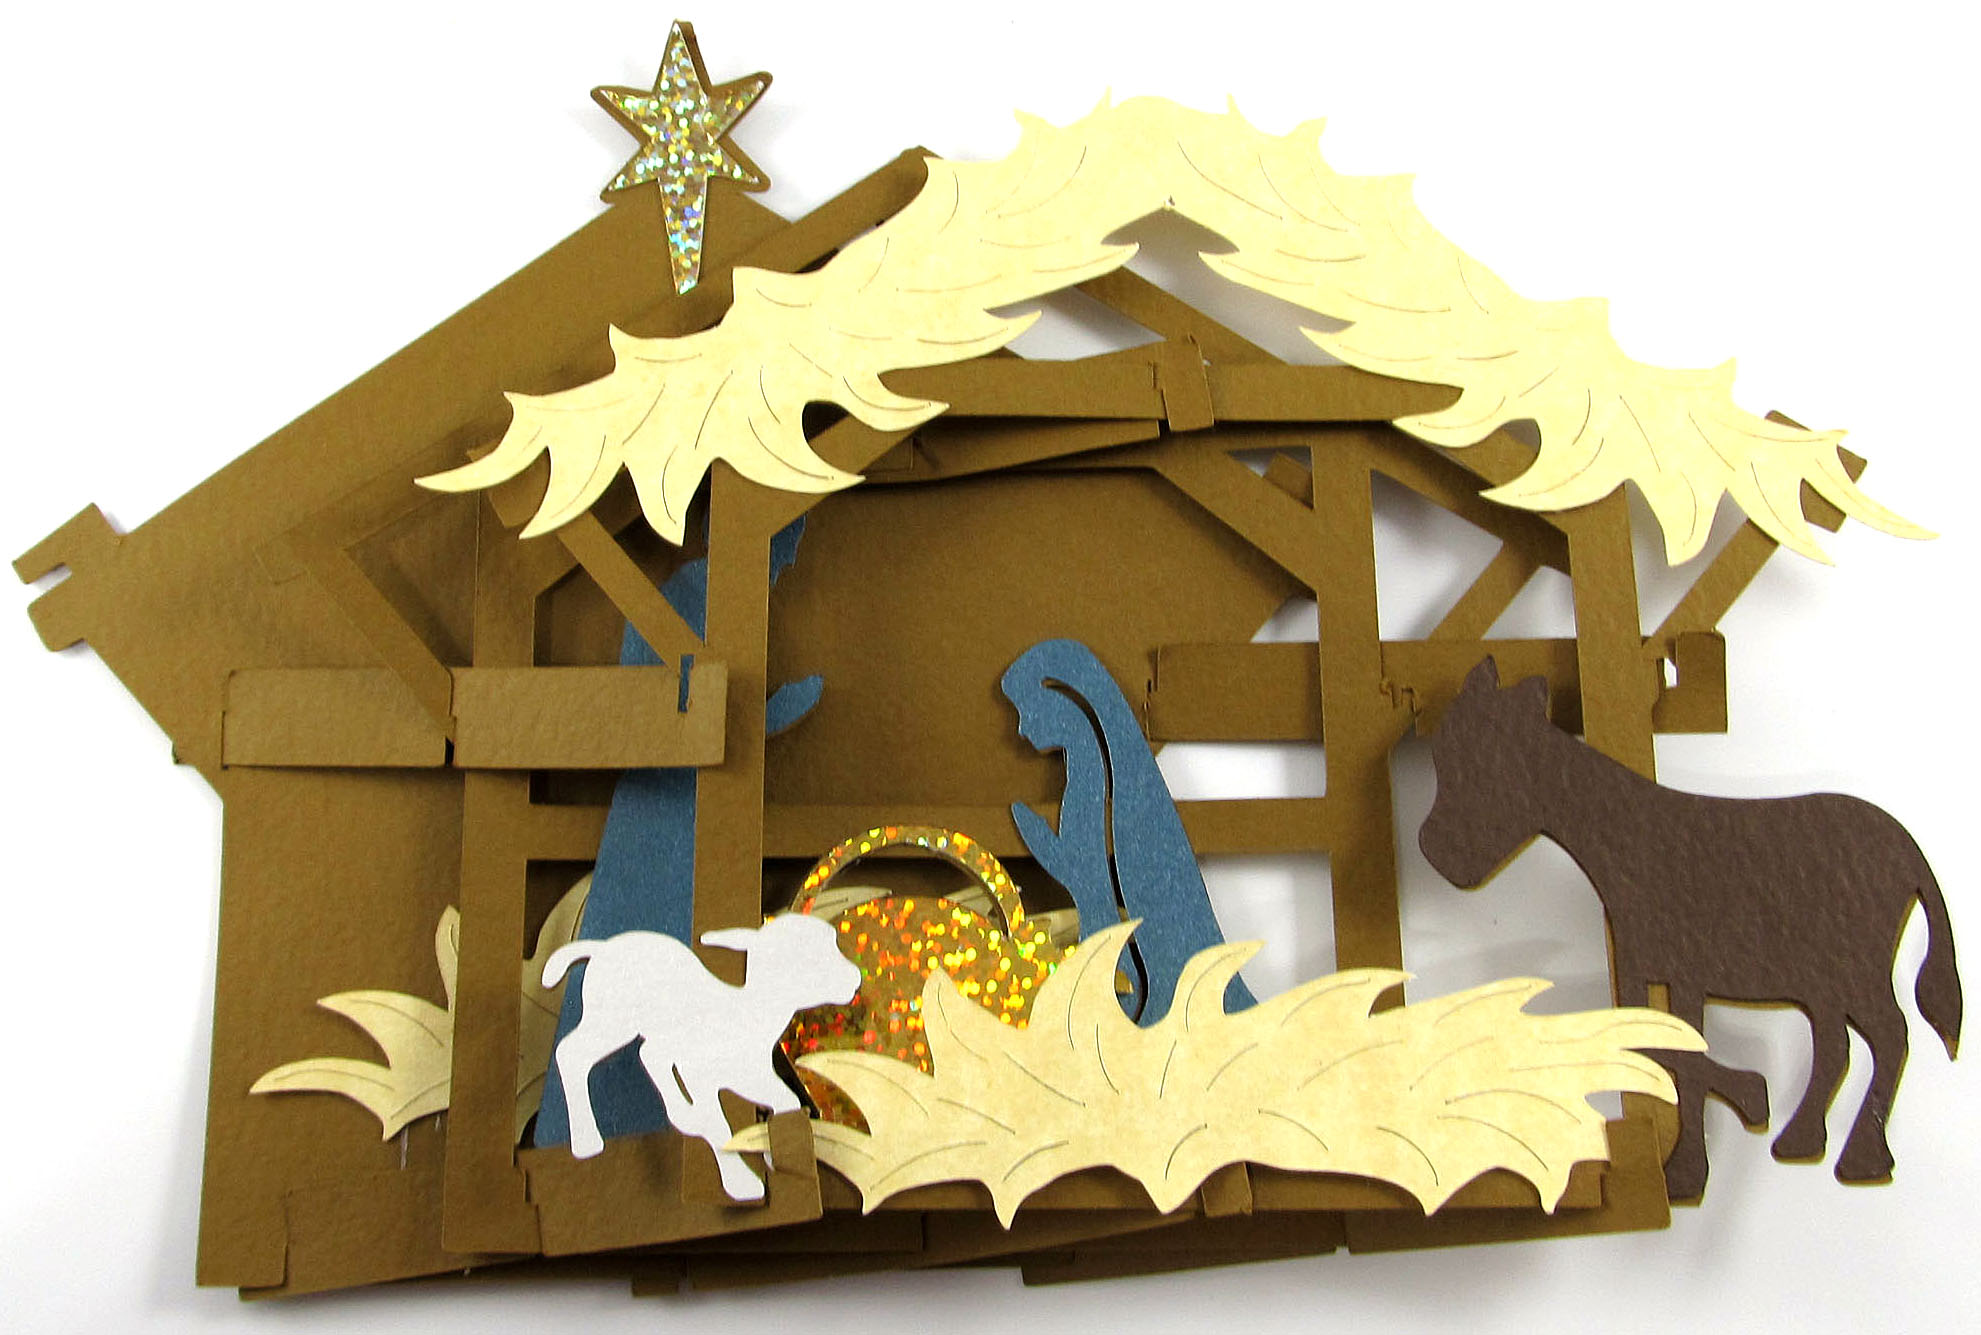 Nativity Sliceform made with the Pazzles Inspiration Vue - SVG file available!